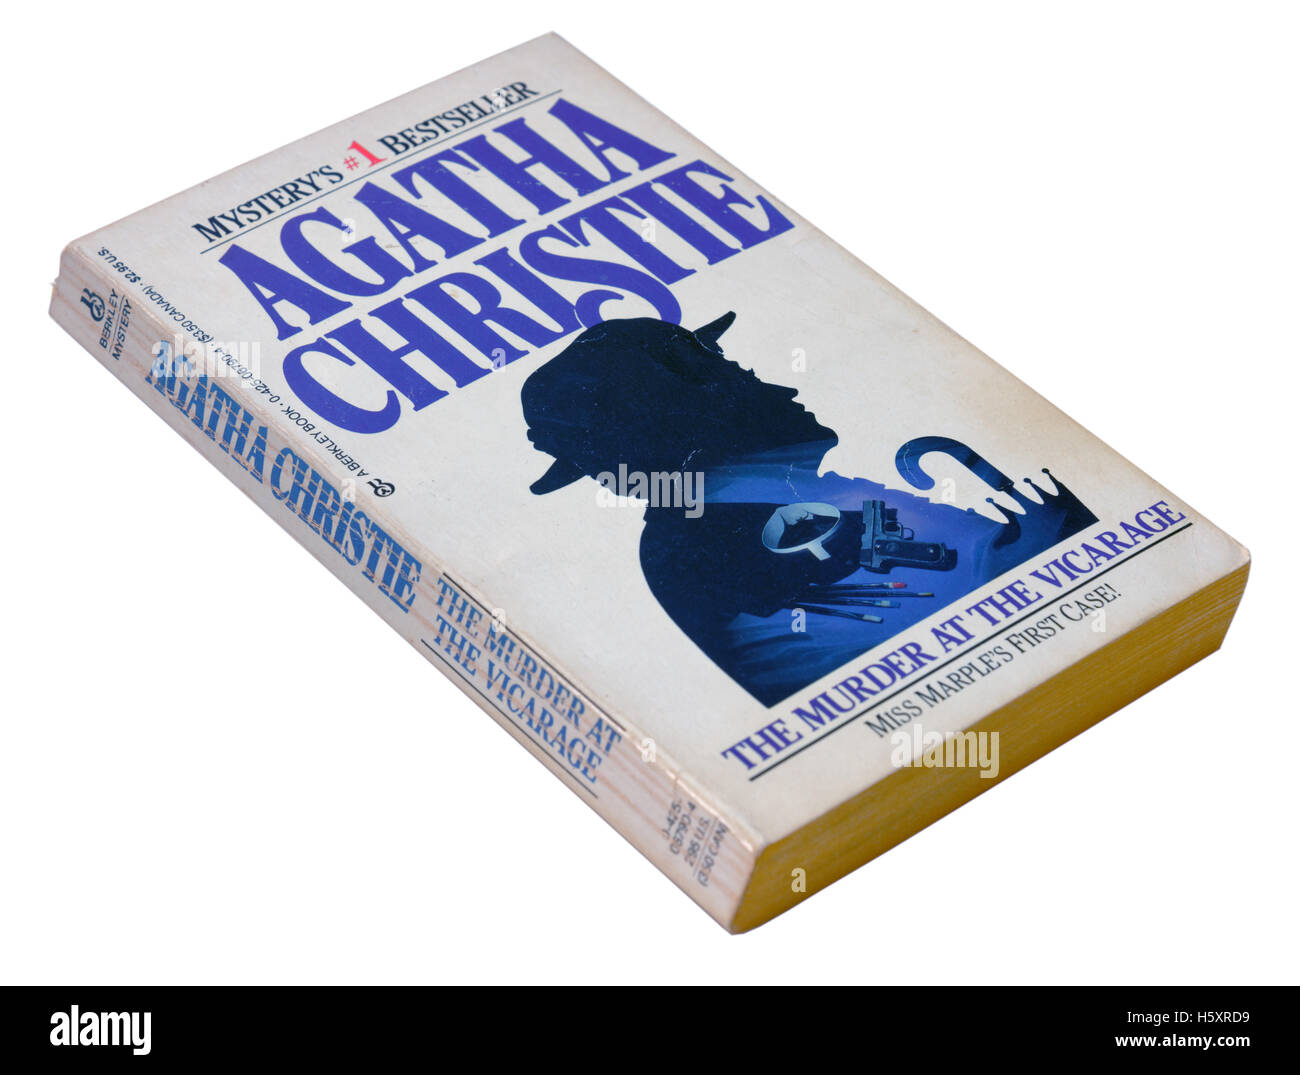 The Muder at the Vicarage by Agatha Christie - Stock Image